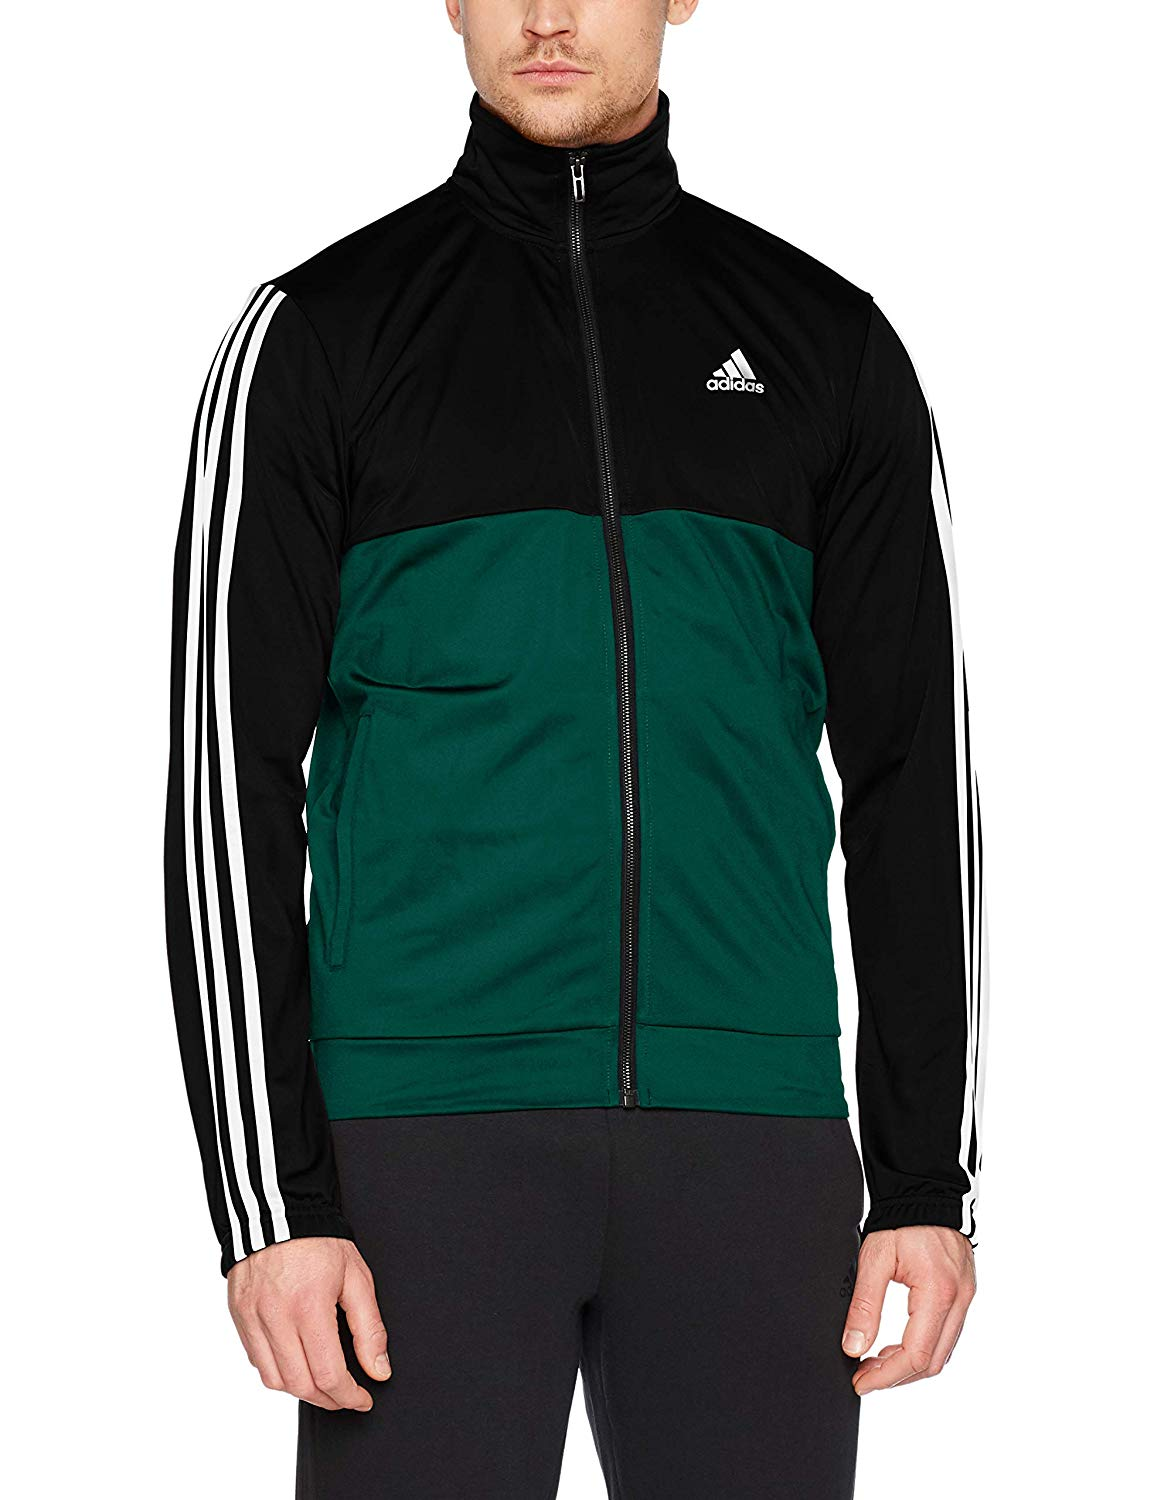 Parmish Verma Green and Black Tracksuit, buy online on amazon